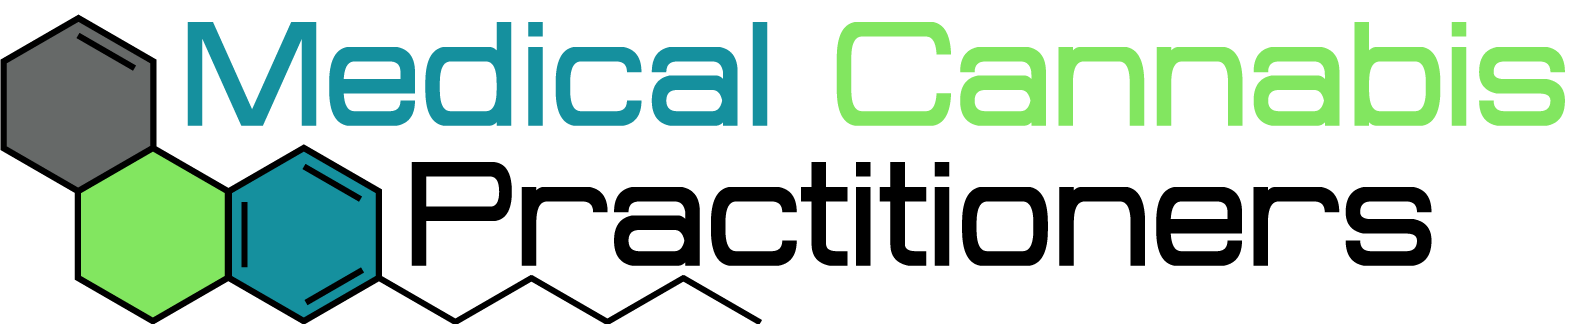 Medical Cannabis Practitioners